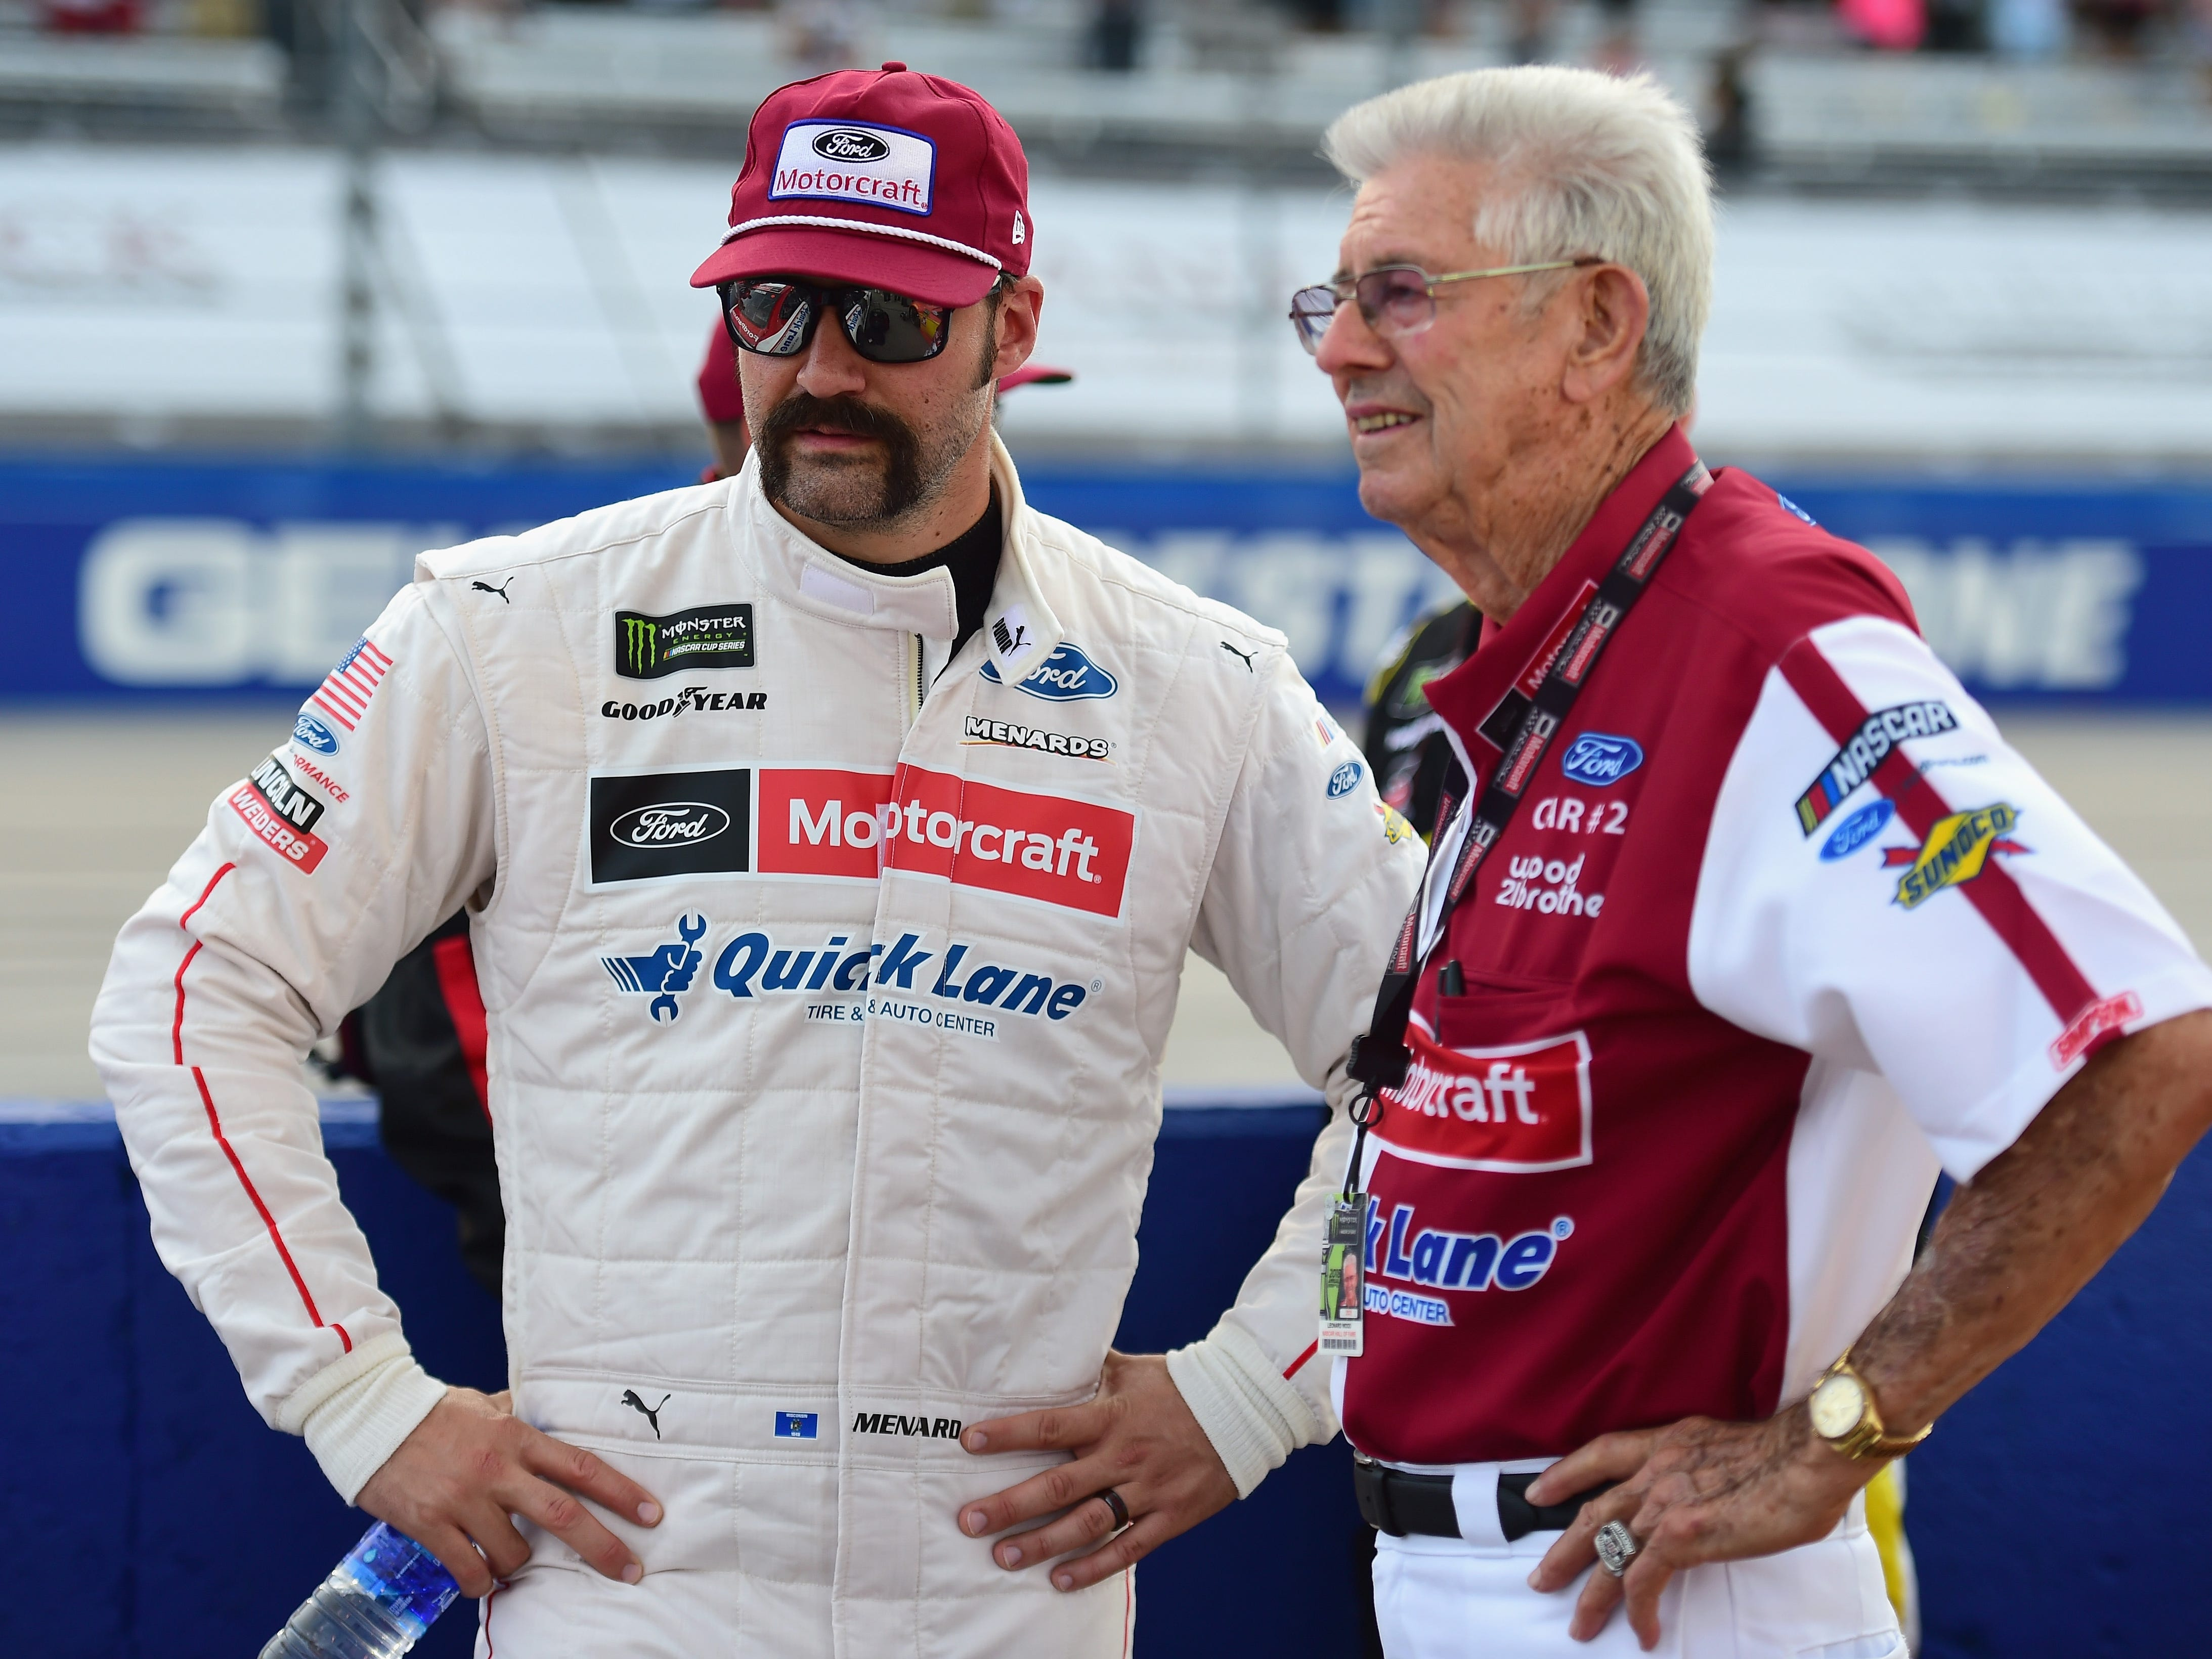 DARLINGTON, SC - SEPTEMBER 02:  Paul Menard, driver of the #21 Motorcraft/Quick Lane Tire & Auto Center Ford, and NASCAR Hall of Famer and team owner Leonard Wood speak on the grid prior to the Monster Energy NASCAR Cup Series Bojangles' Southern 500 at Darlington Raceway on September 2, 2018 in Darlington, South Carolina.  (Photo by Jared C. Tilton/Getty Images)